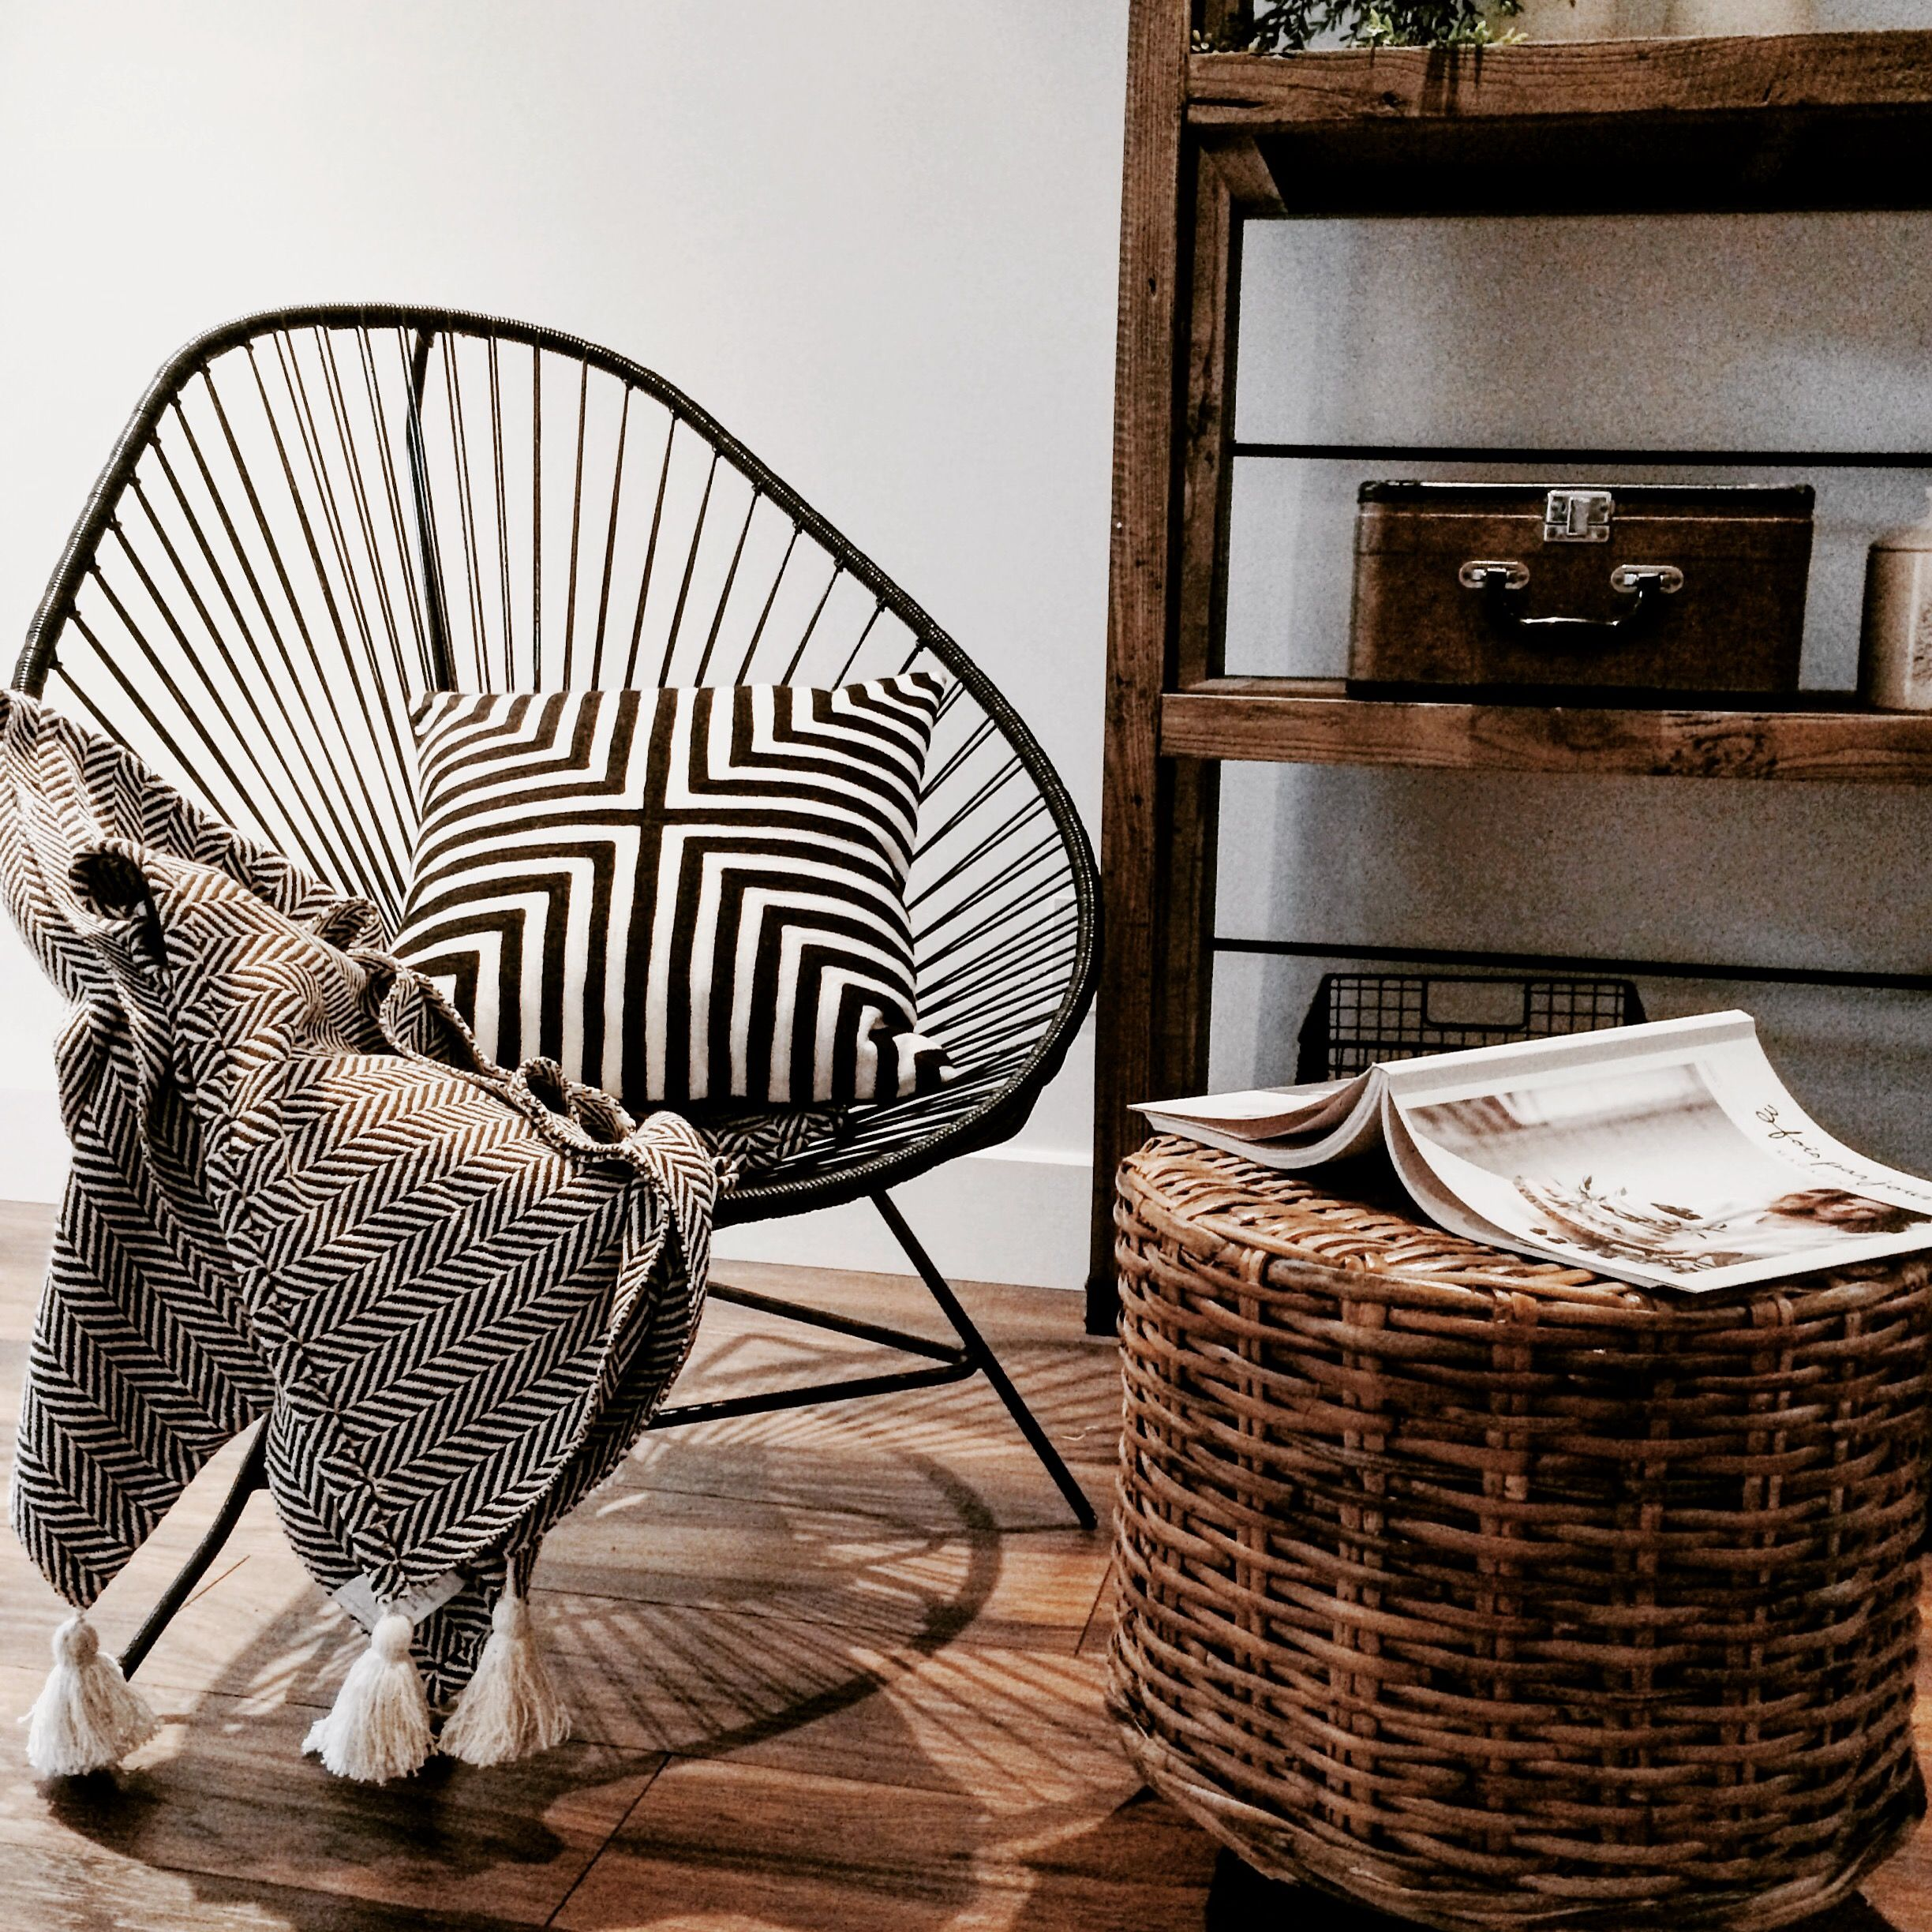 Acapulco chair - black and white with wood tone accessories. By Vision (TM)